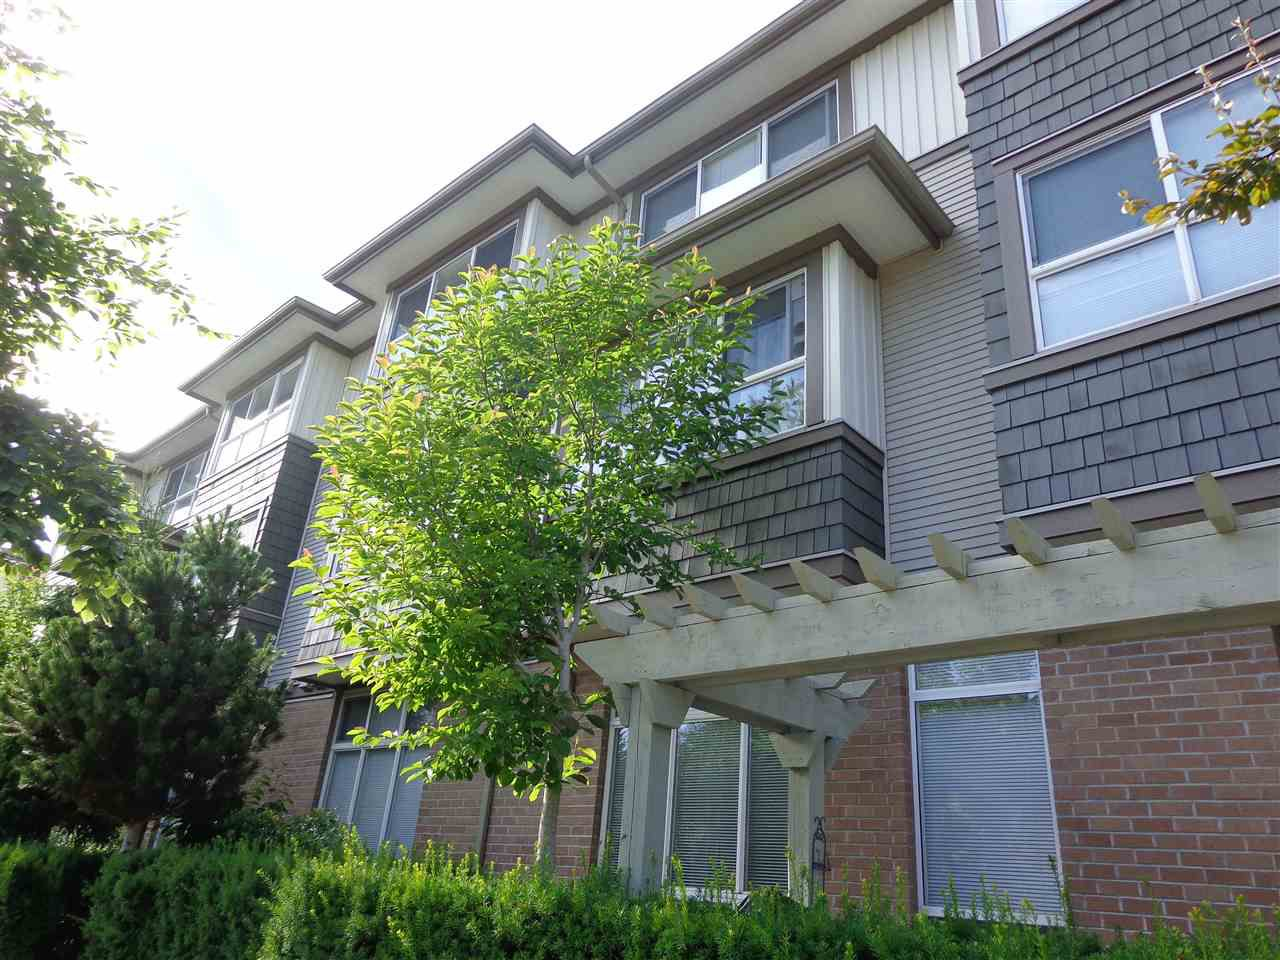 """Main Photo: 13 15353 100 Avenue in Surrey: Guildford Townhouse for sale in """"SOUL OF GUILDFORD"""" (North Surrey)  : MLS®# R2189078"""